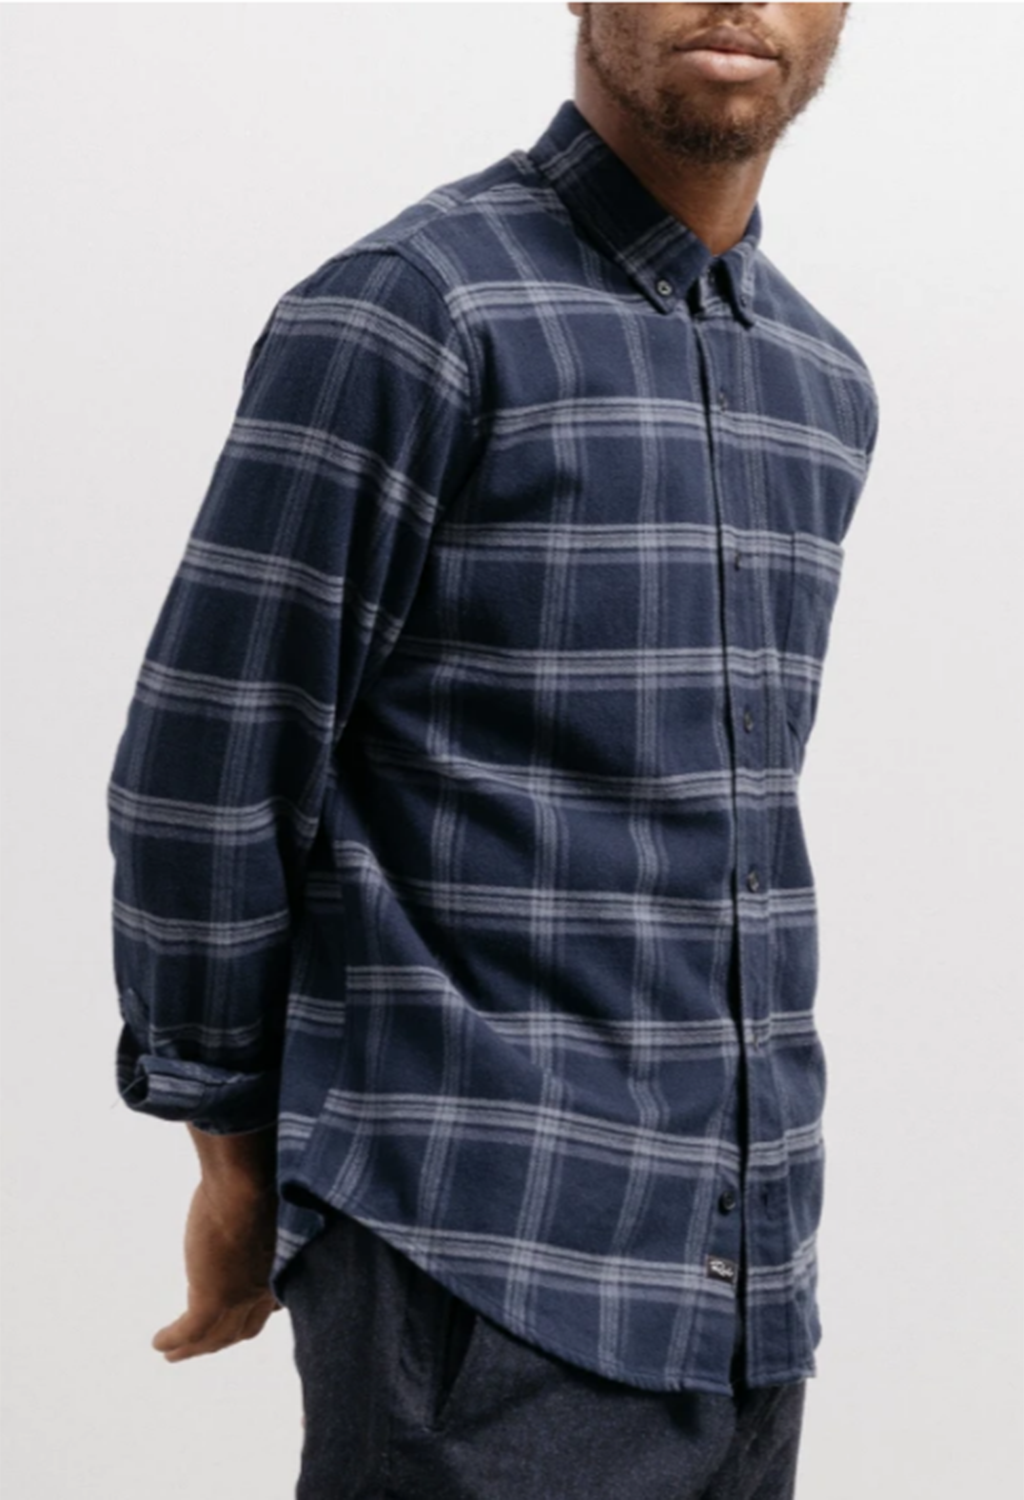 Rails Forrest Plaid Shirt, Navy - RUST & Co.